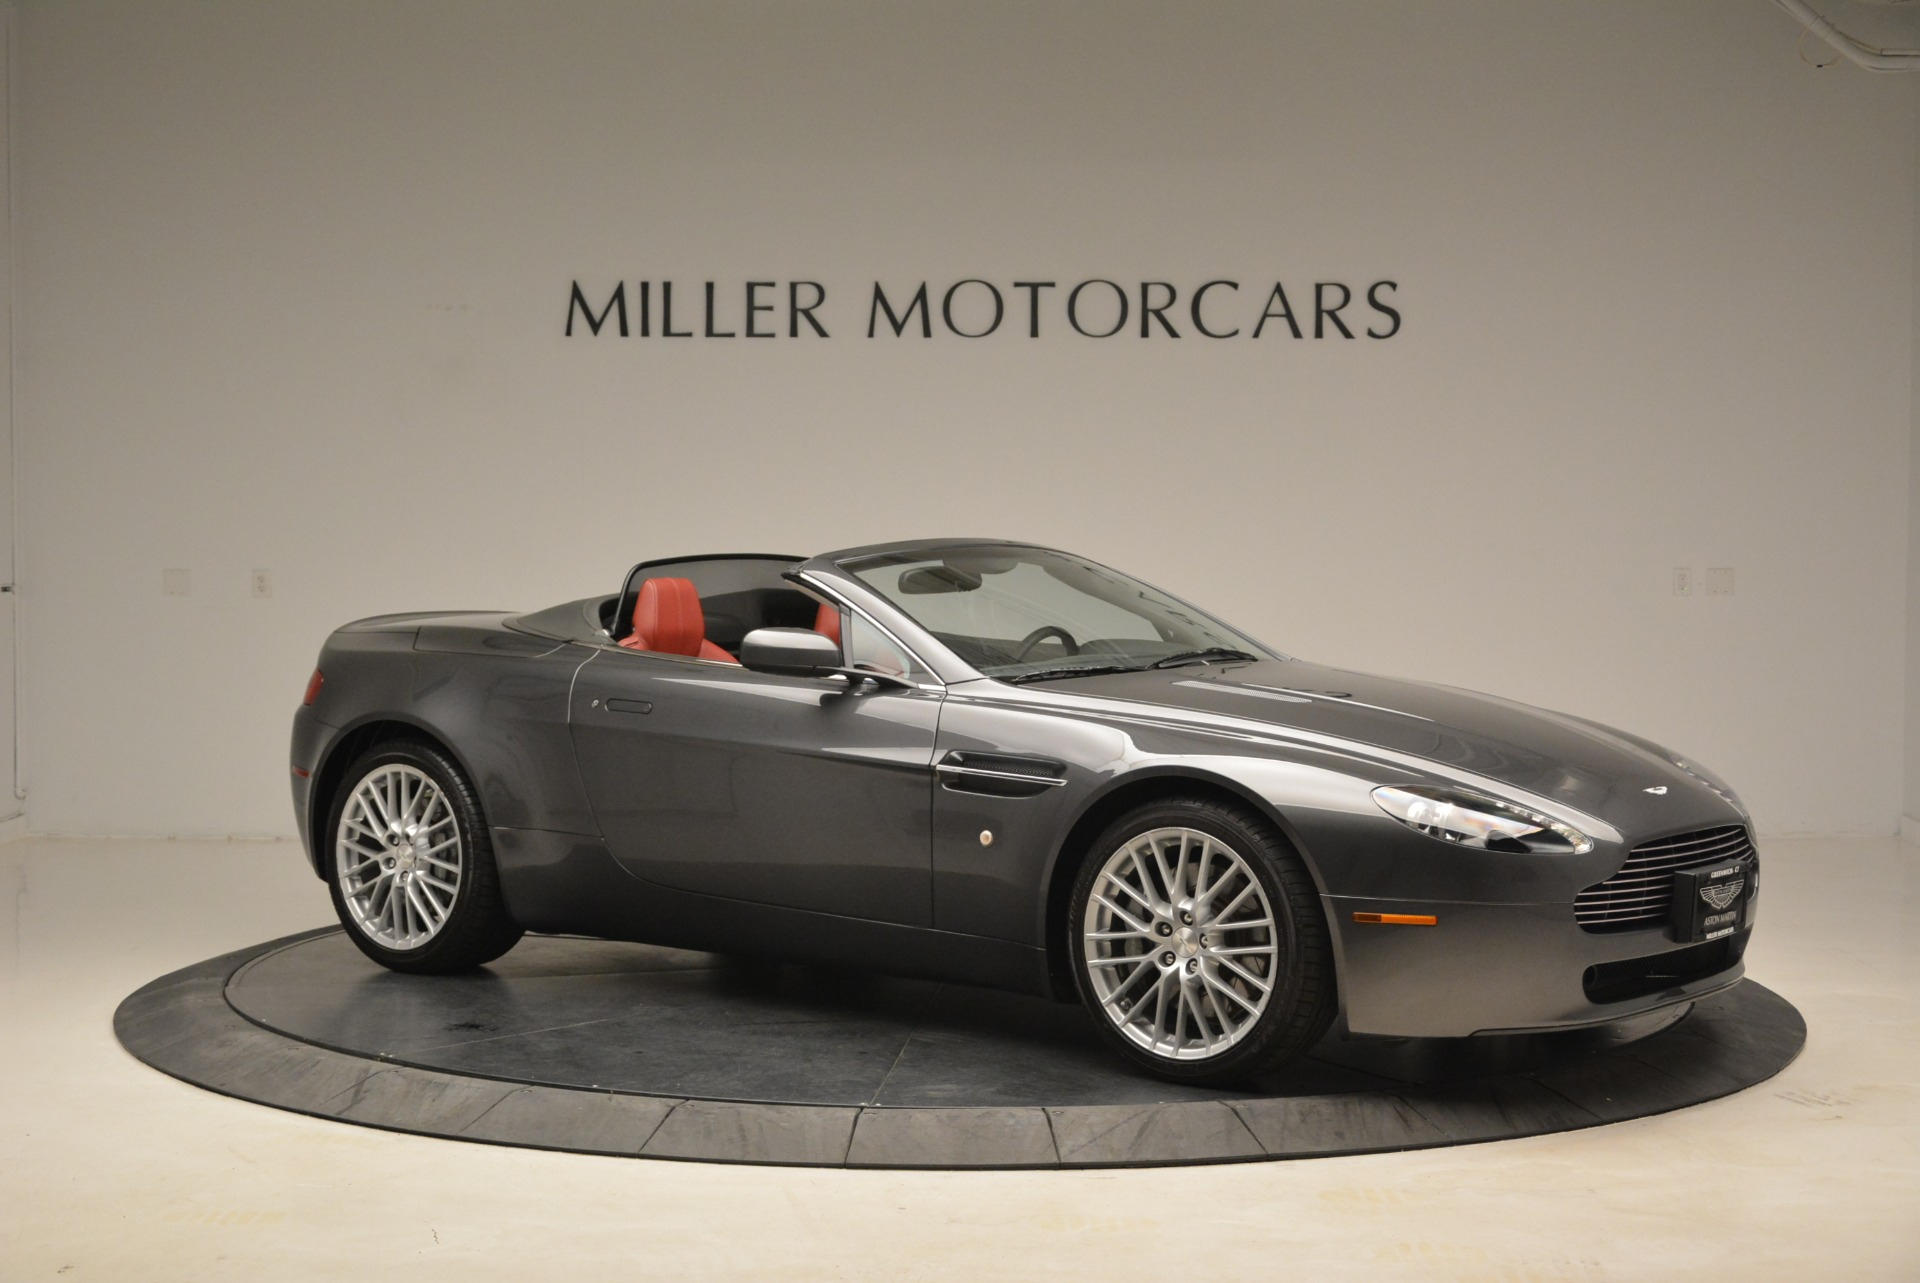 Used 2009 Aston Martin V8 Vantage Roadster For Sale In Greenwich, CT. Alfa Romeo of Greenwich, 7333 2123_p10